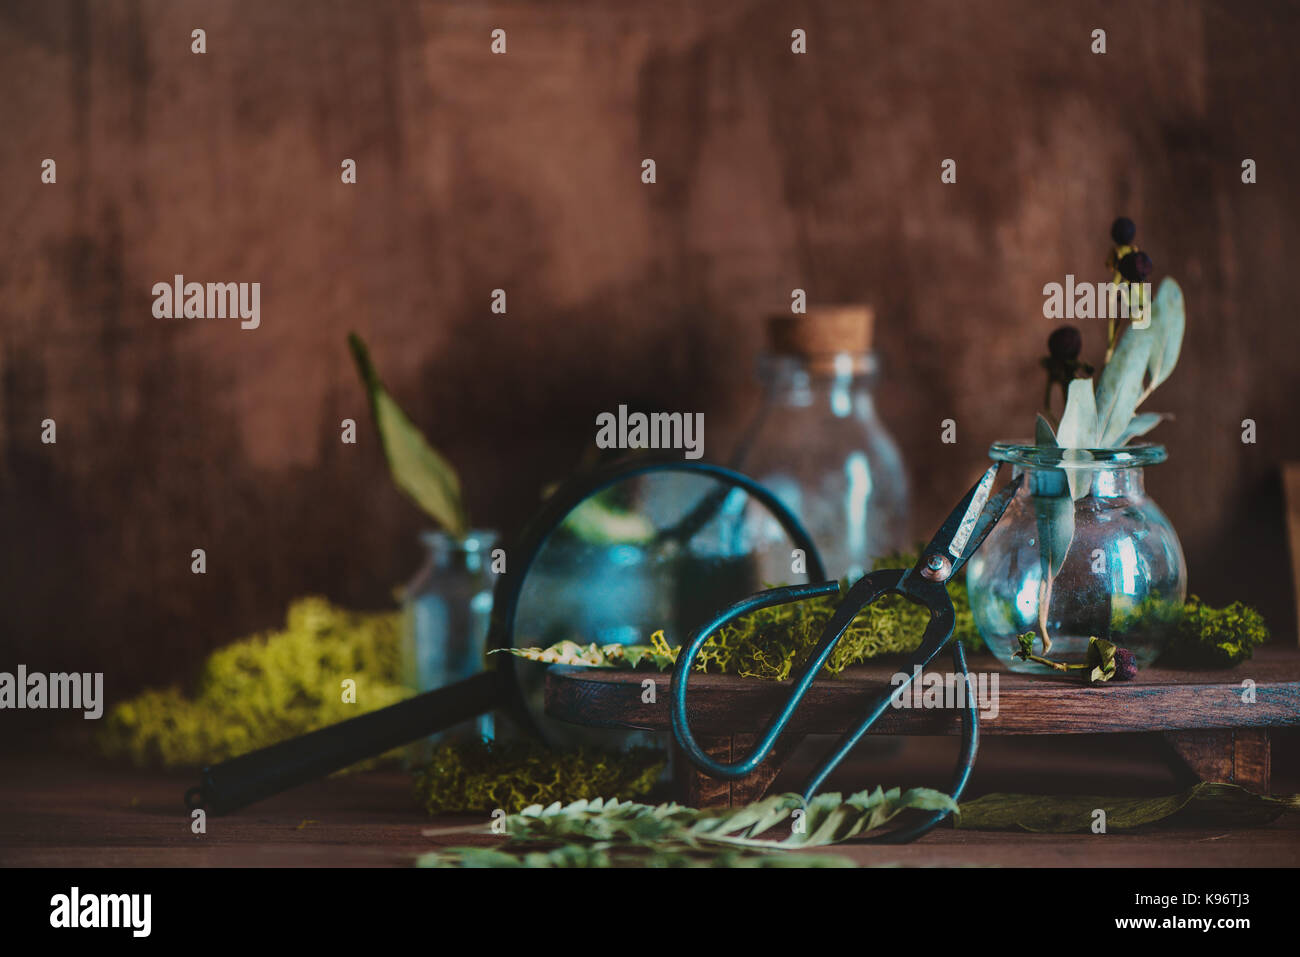 Warm still life with glass jars, magnifying glass, scissors, dried plants, moss and craft paper envelopes - Stock Image